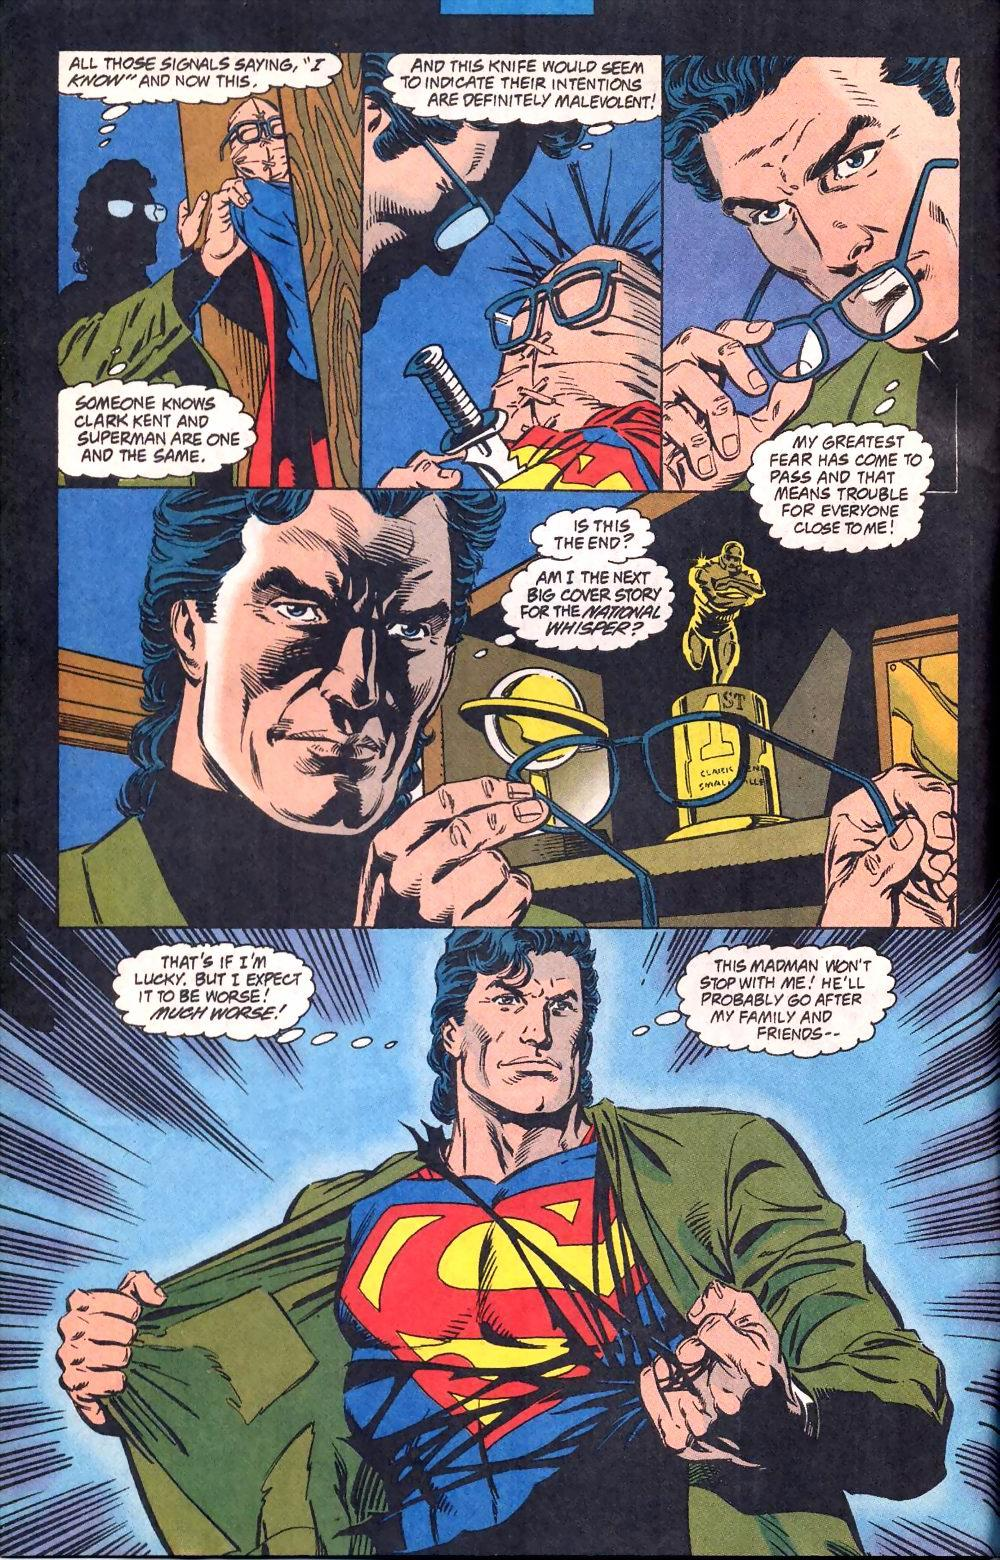 Superman The Death of Clark Kent review